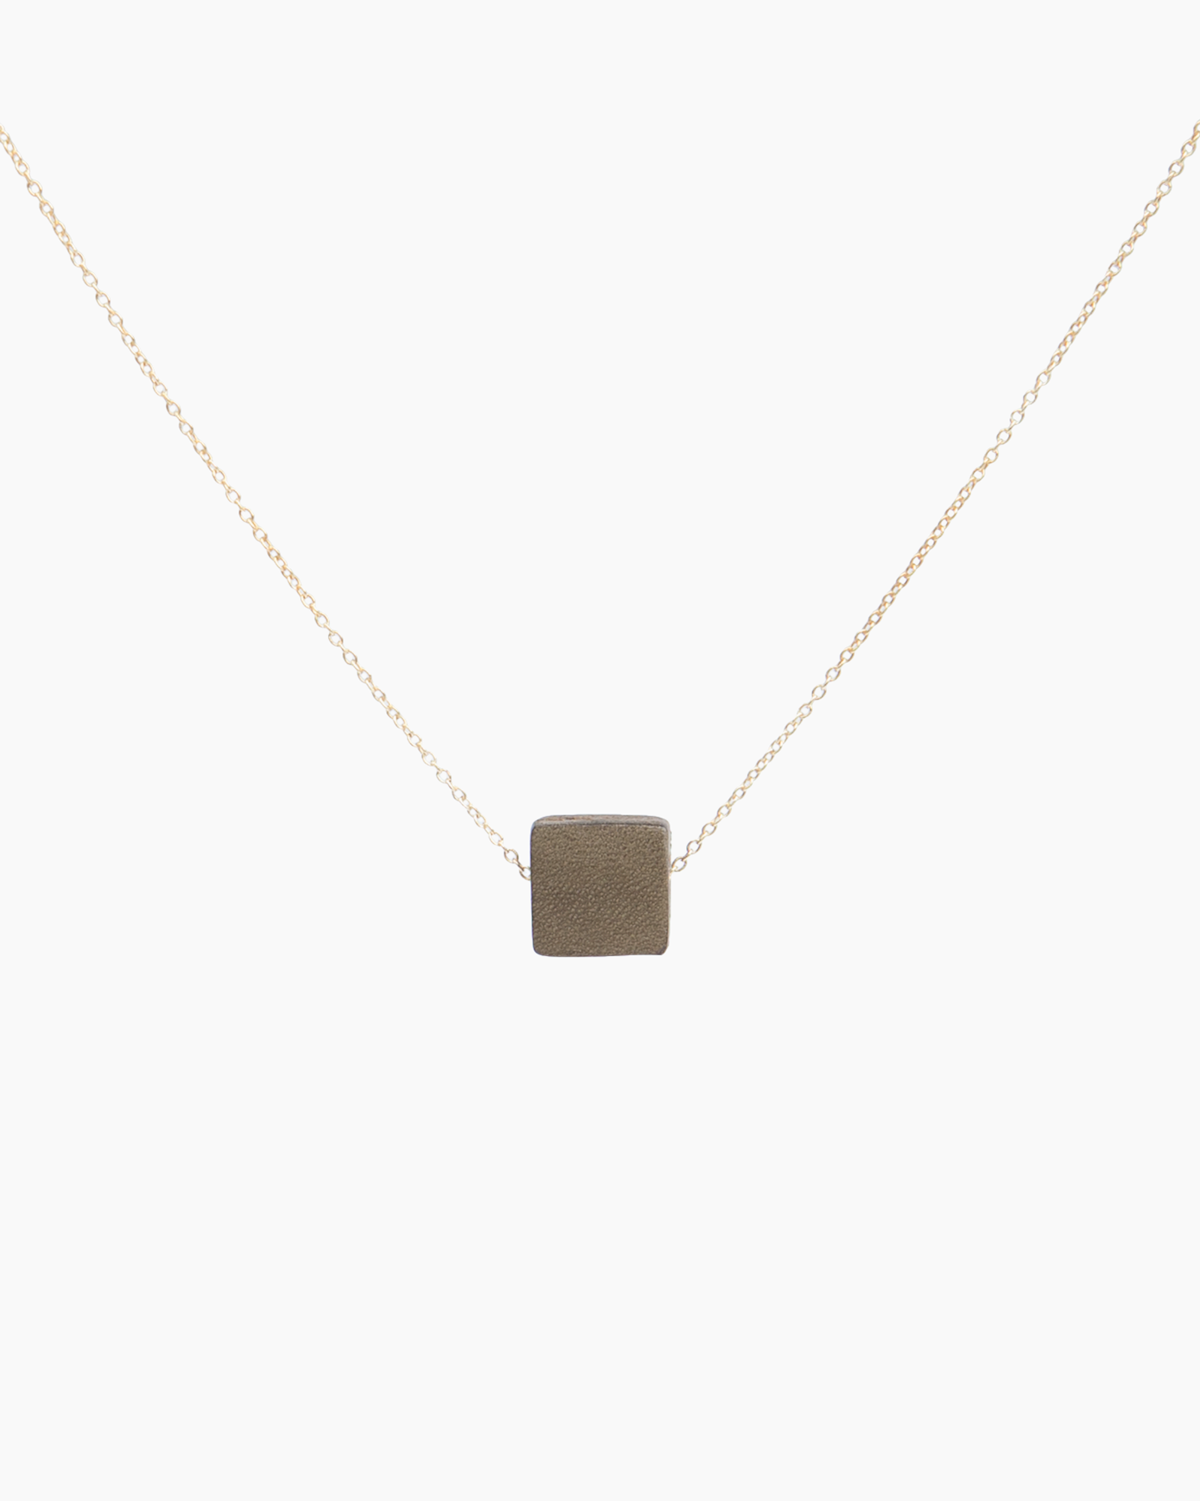 Leather Solo Block Necklace